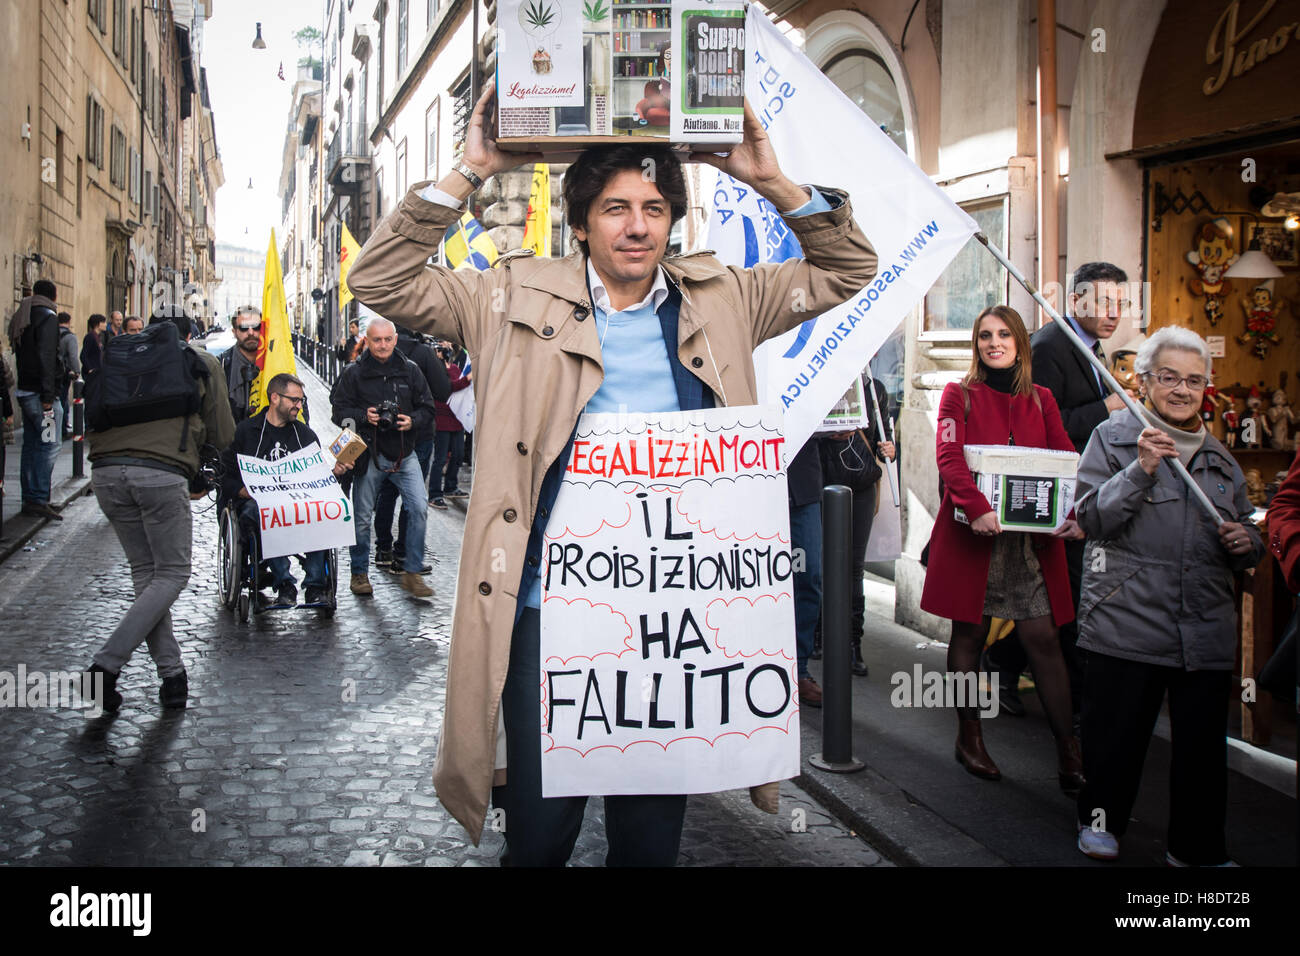 Rome, Italy. 11th November, 2016. Handover to the Bill to legalize cannabis, Italian radicals and other associations Stock Photo